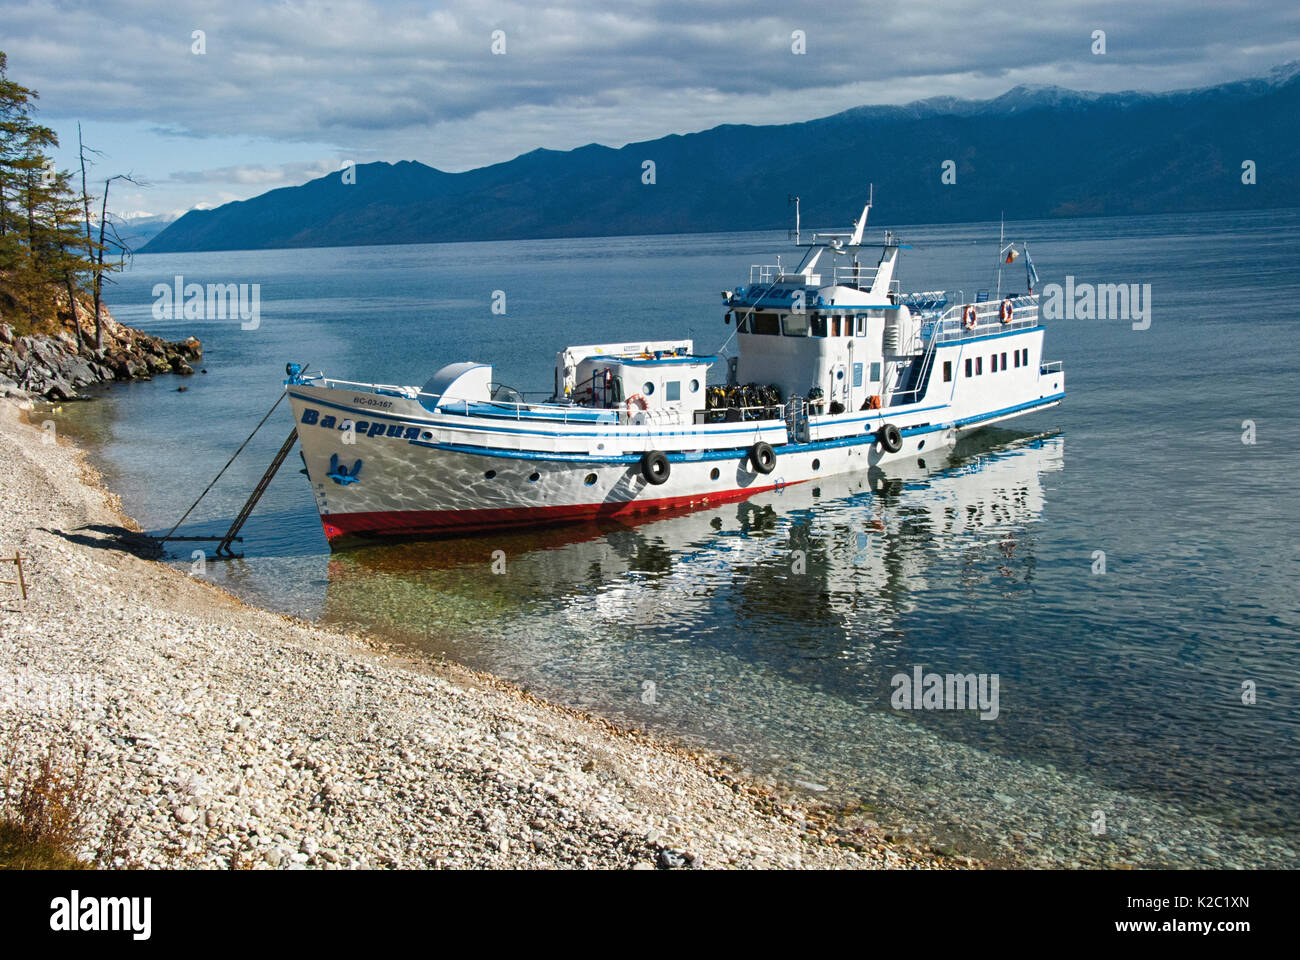 Boat on the shore of Ushkanyi islands, breeding grounds of the Baikal seal (Pusa sibirica) Siberia, Russia, October 2010. - Stock Image